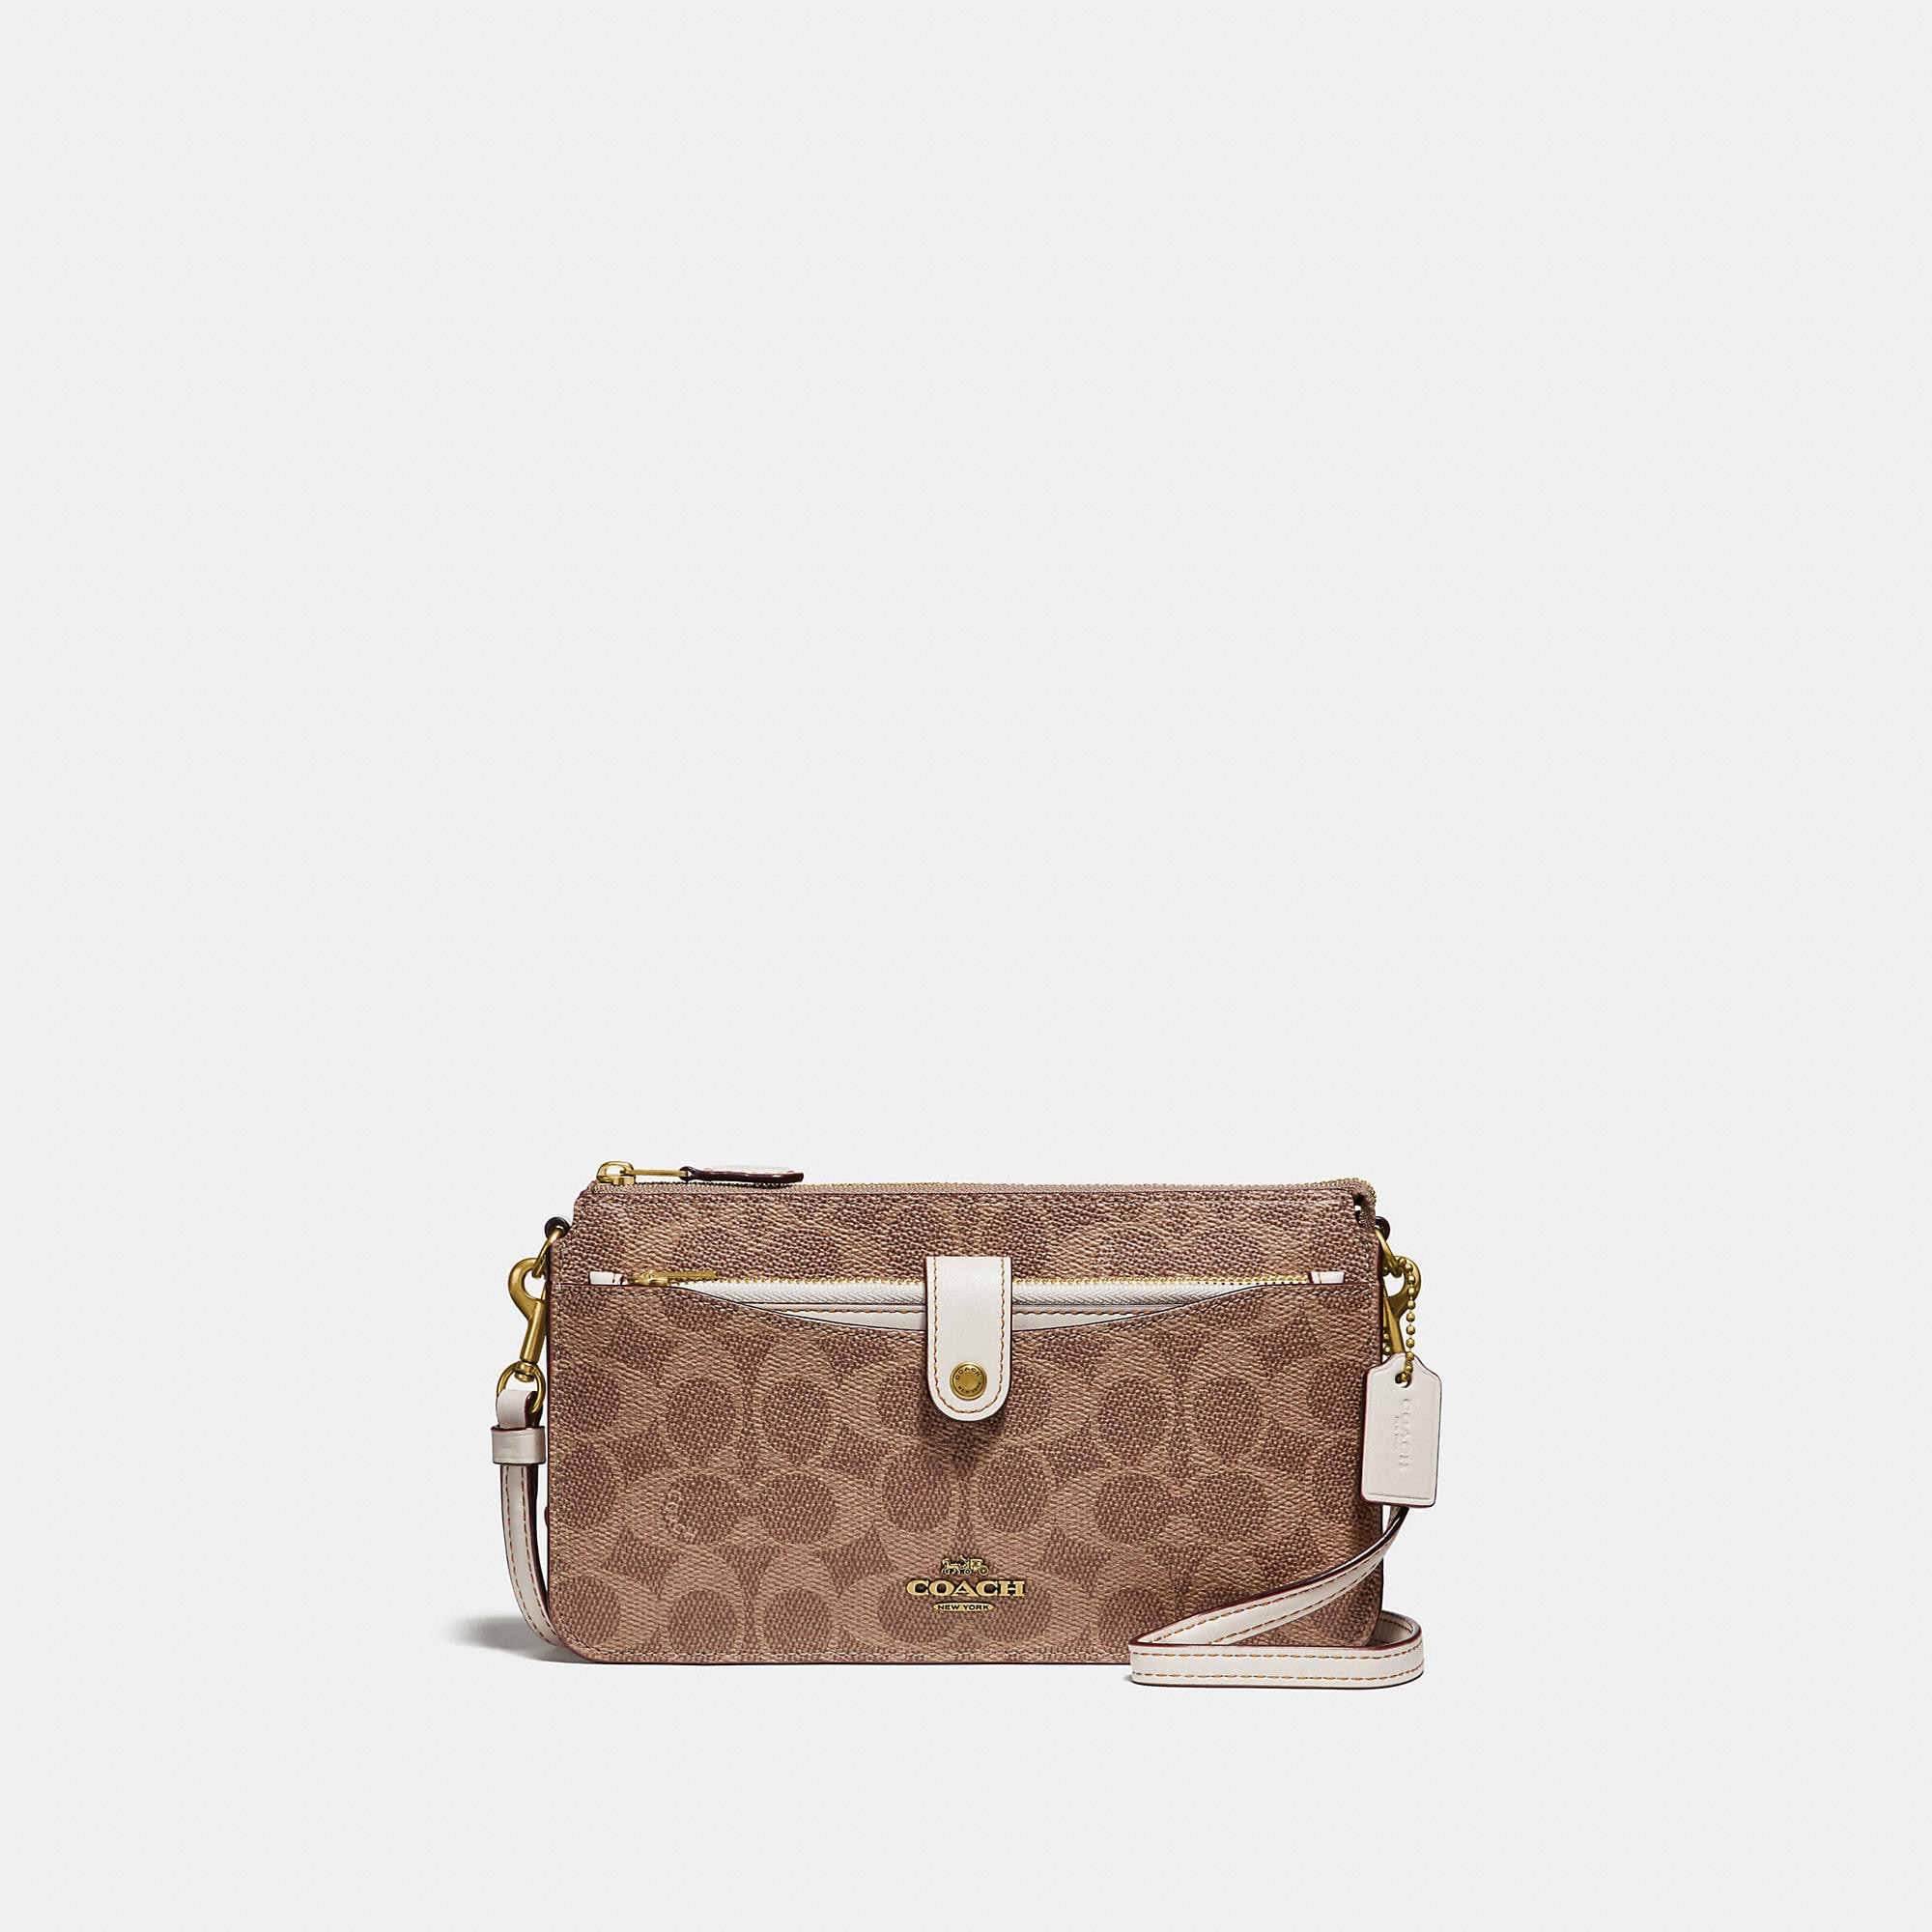 Coach Pop-Up Messenger In Colorblock Signature Coated Canvas - Women'S In  Tan/Chalk